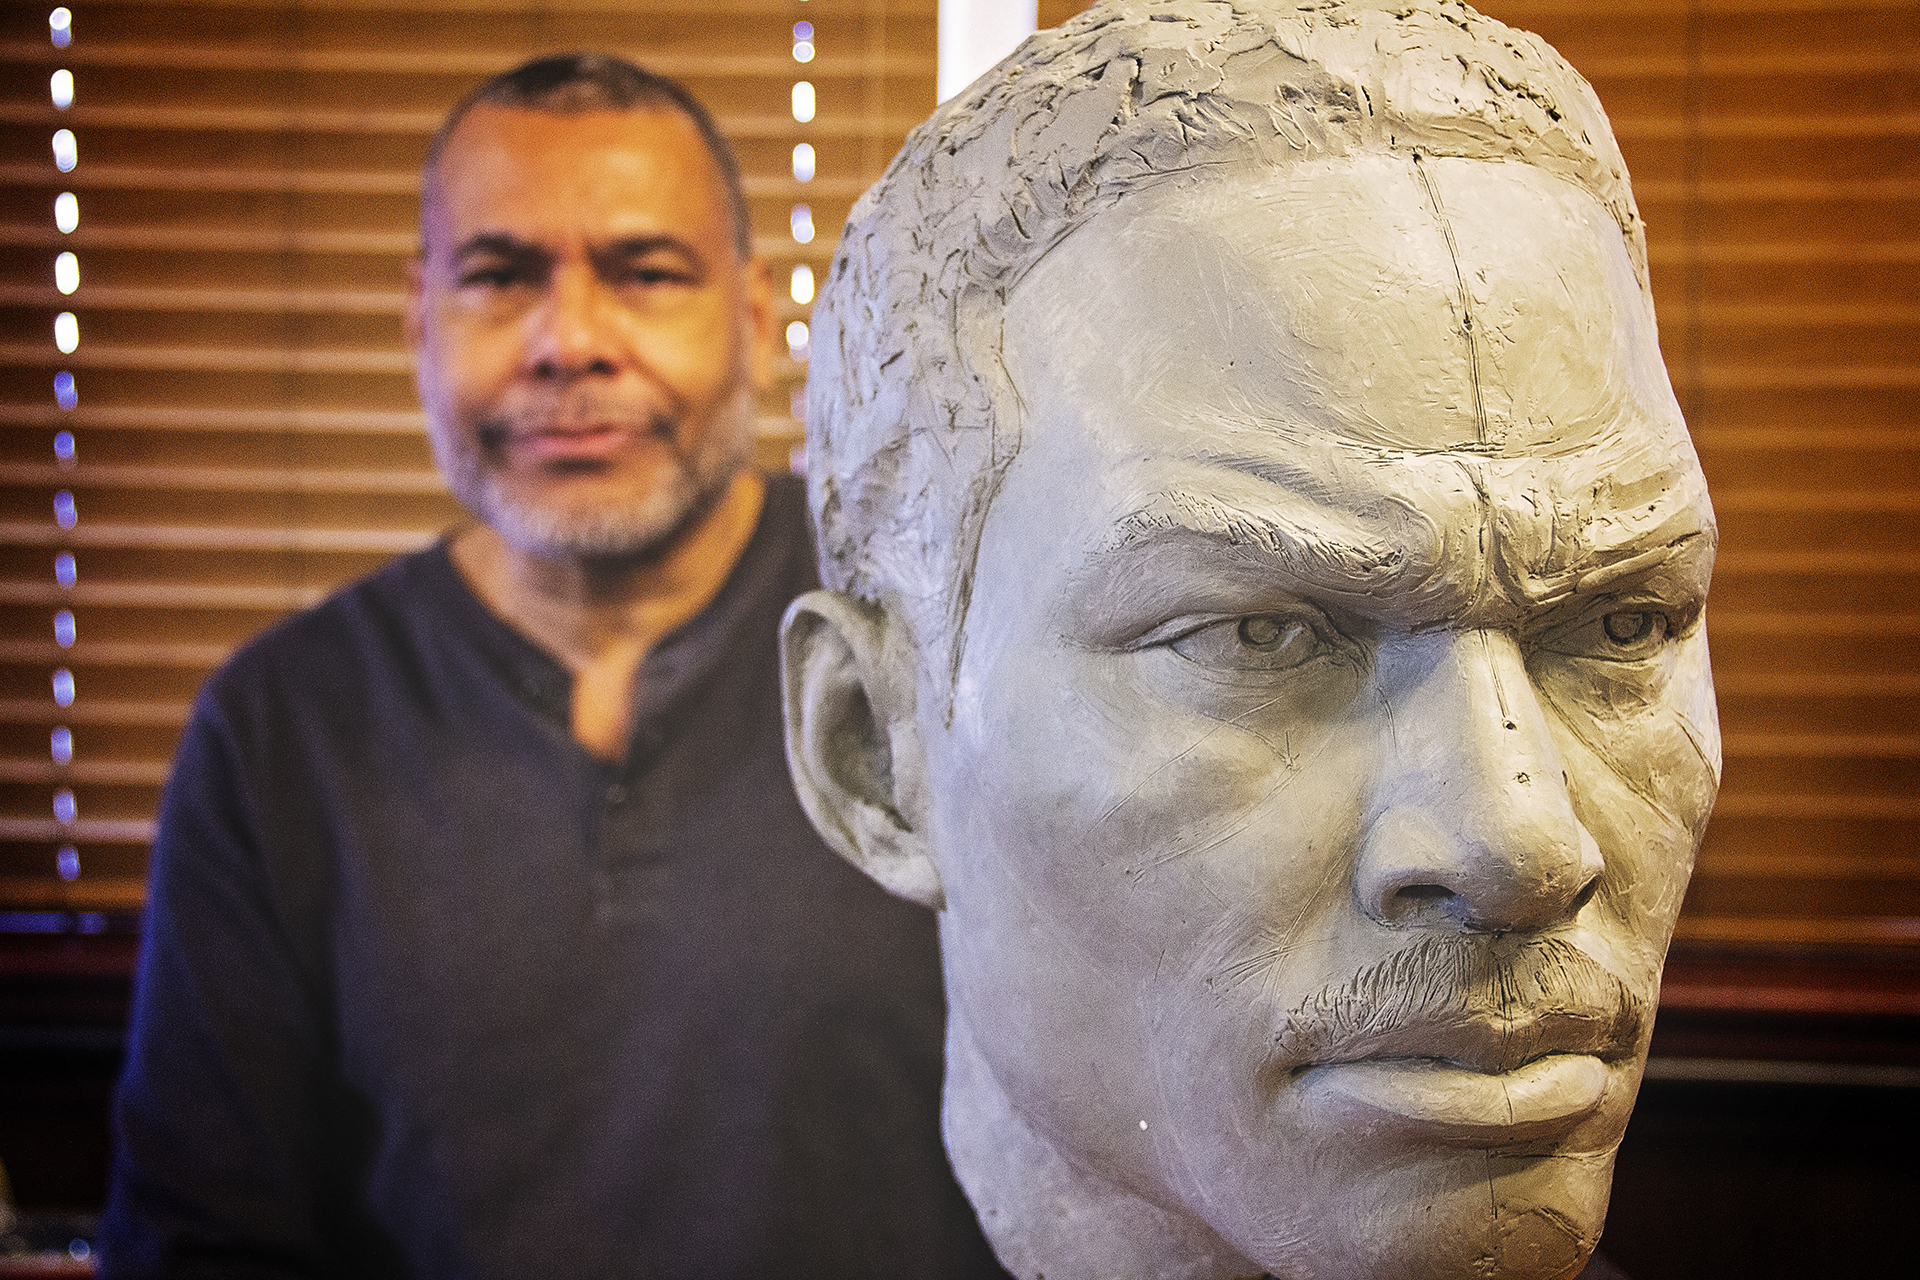 Ezzard Charles II with the in-process bust of his father, photo by Kailah Ware